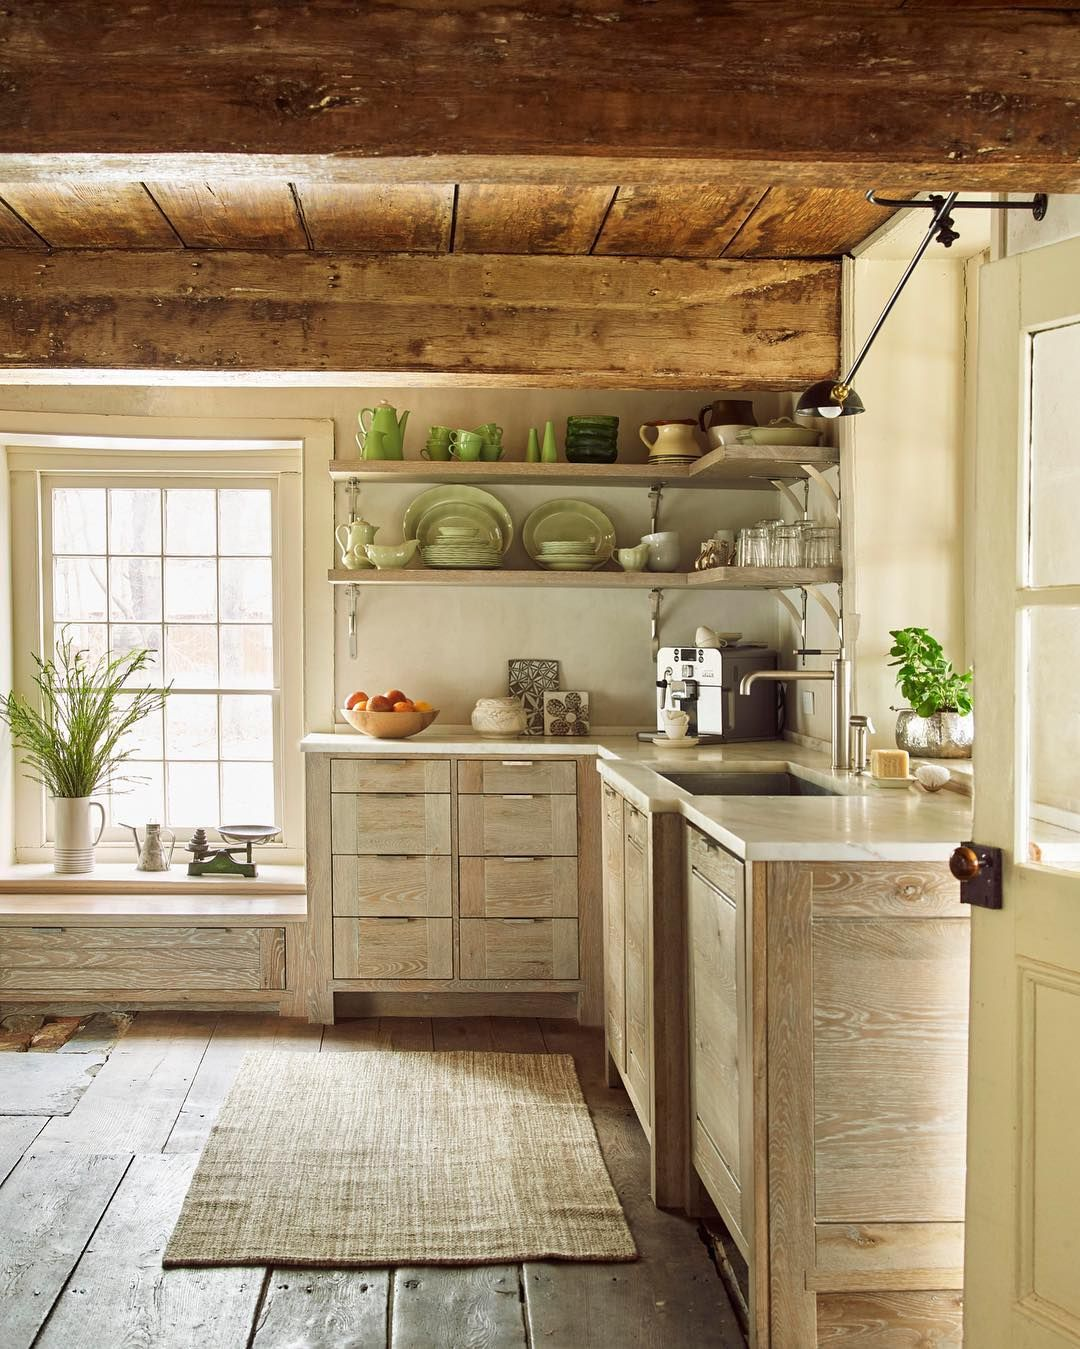 old meets new in a kitchen brimming with character photo rh pinterest com